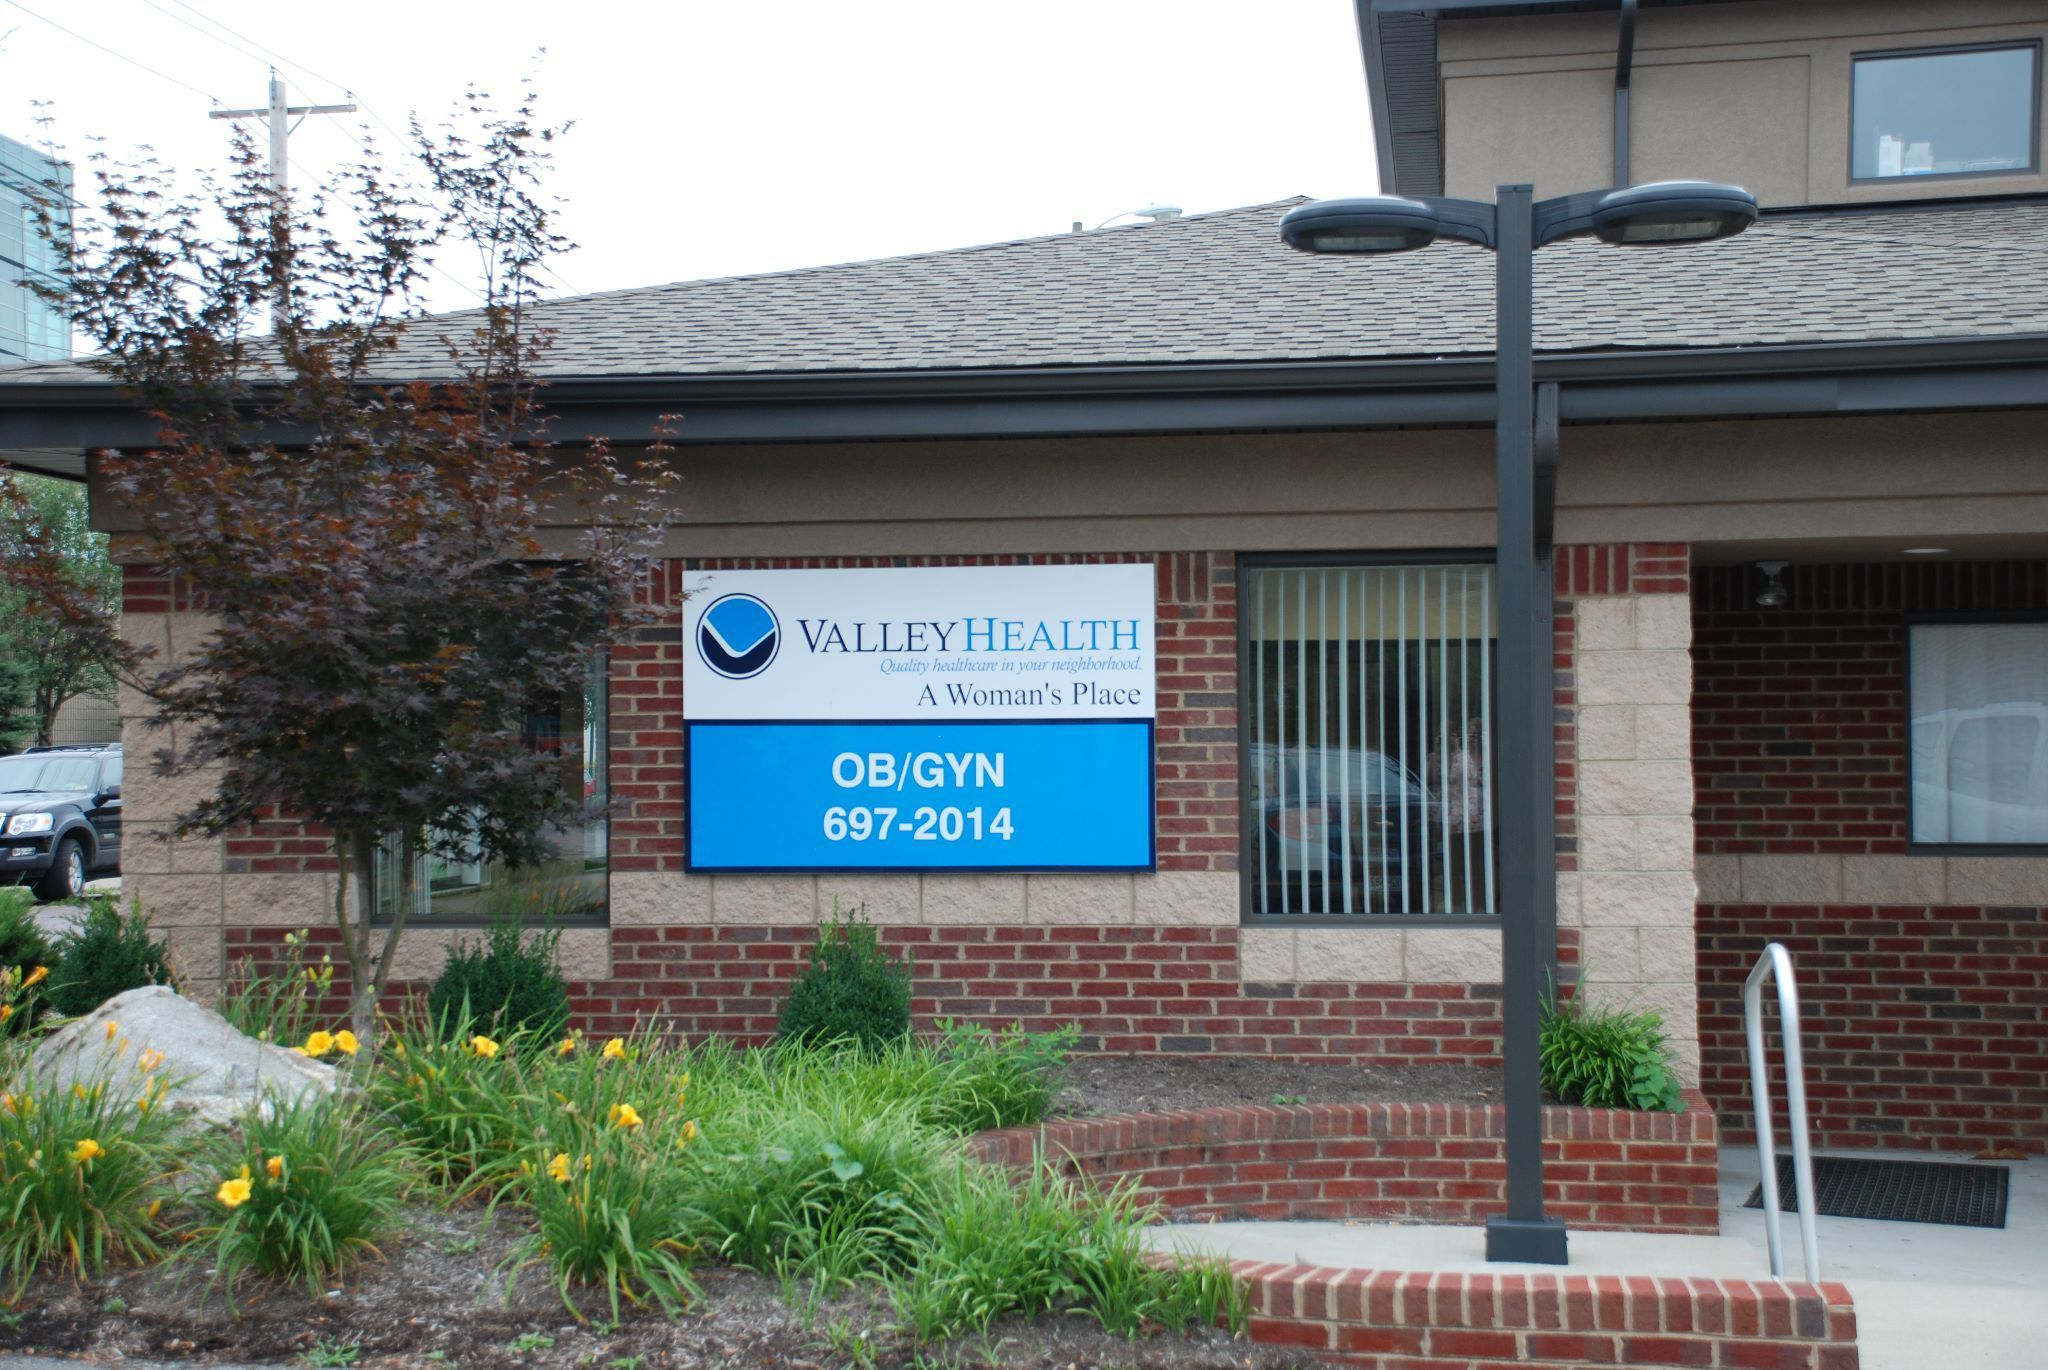 Valley Health - A Woman Place